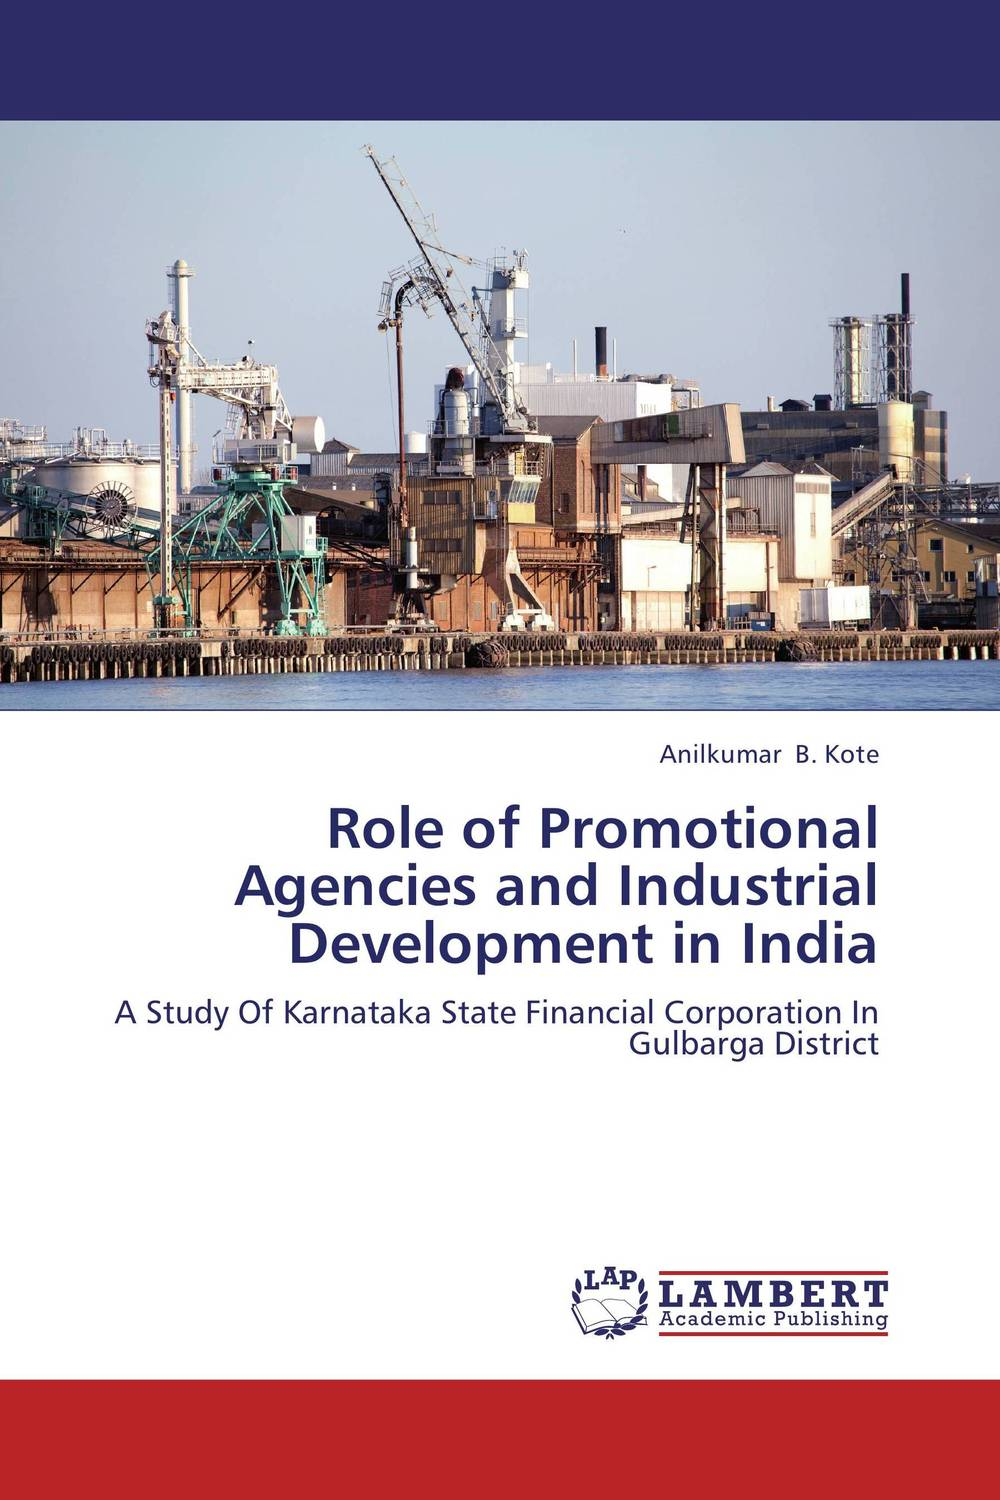 Role of Promotional Agencies and Industrial Development in India environmental protection in india role of supreme court